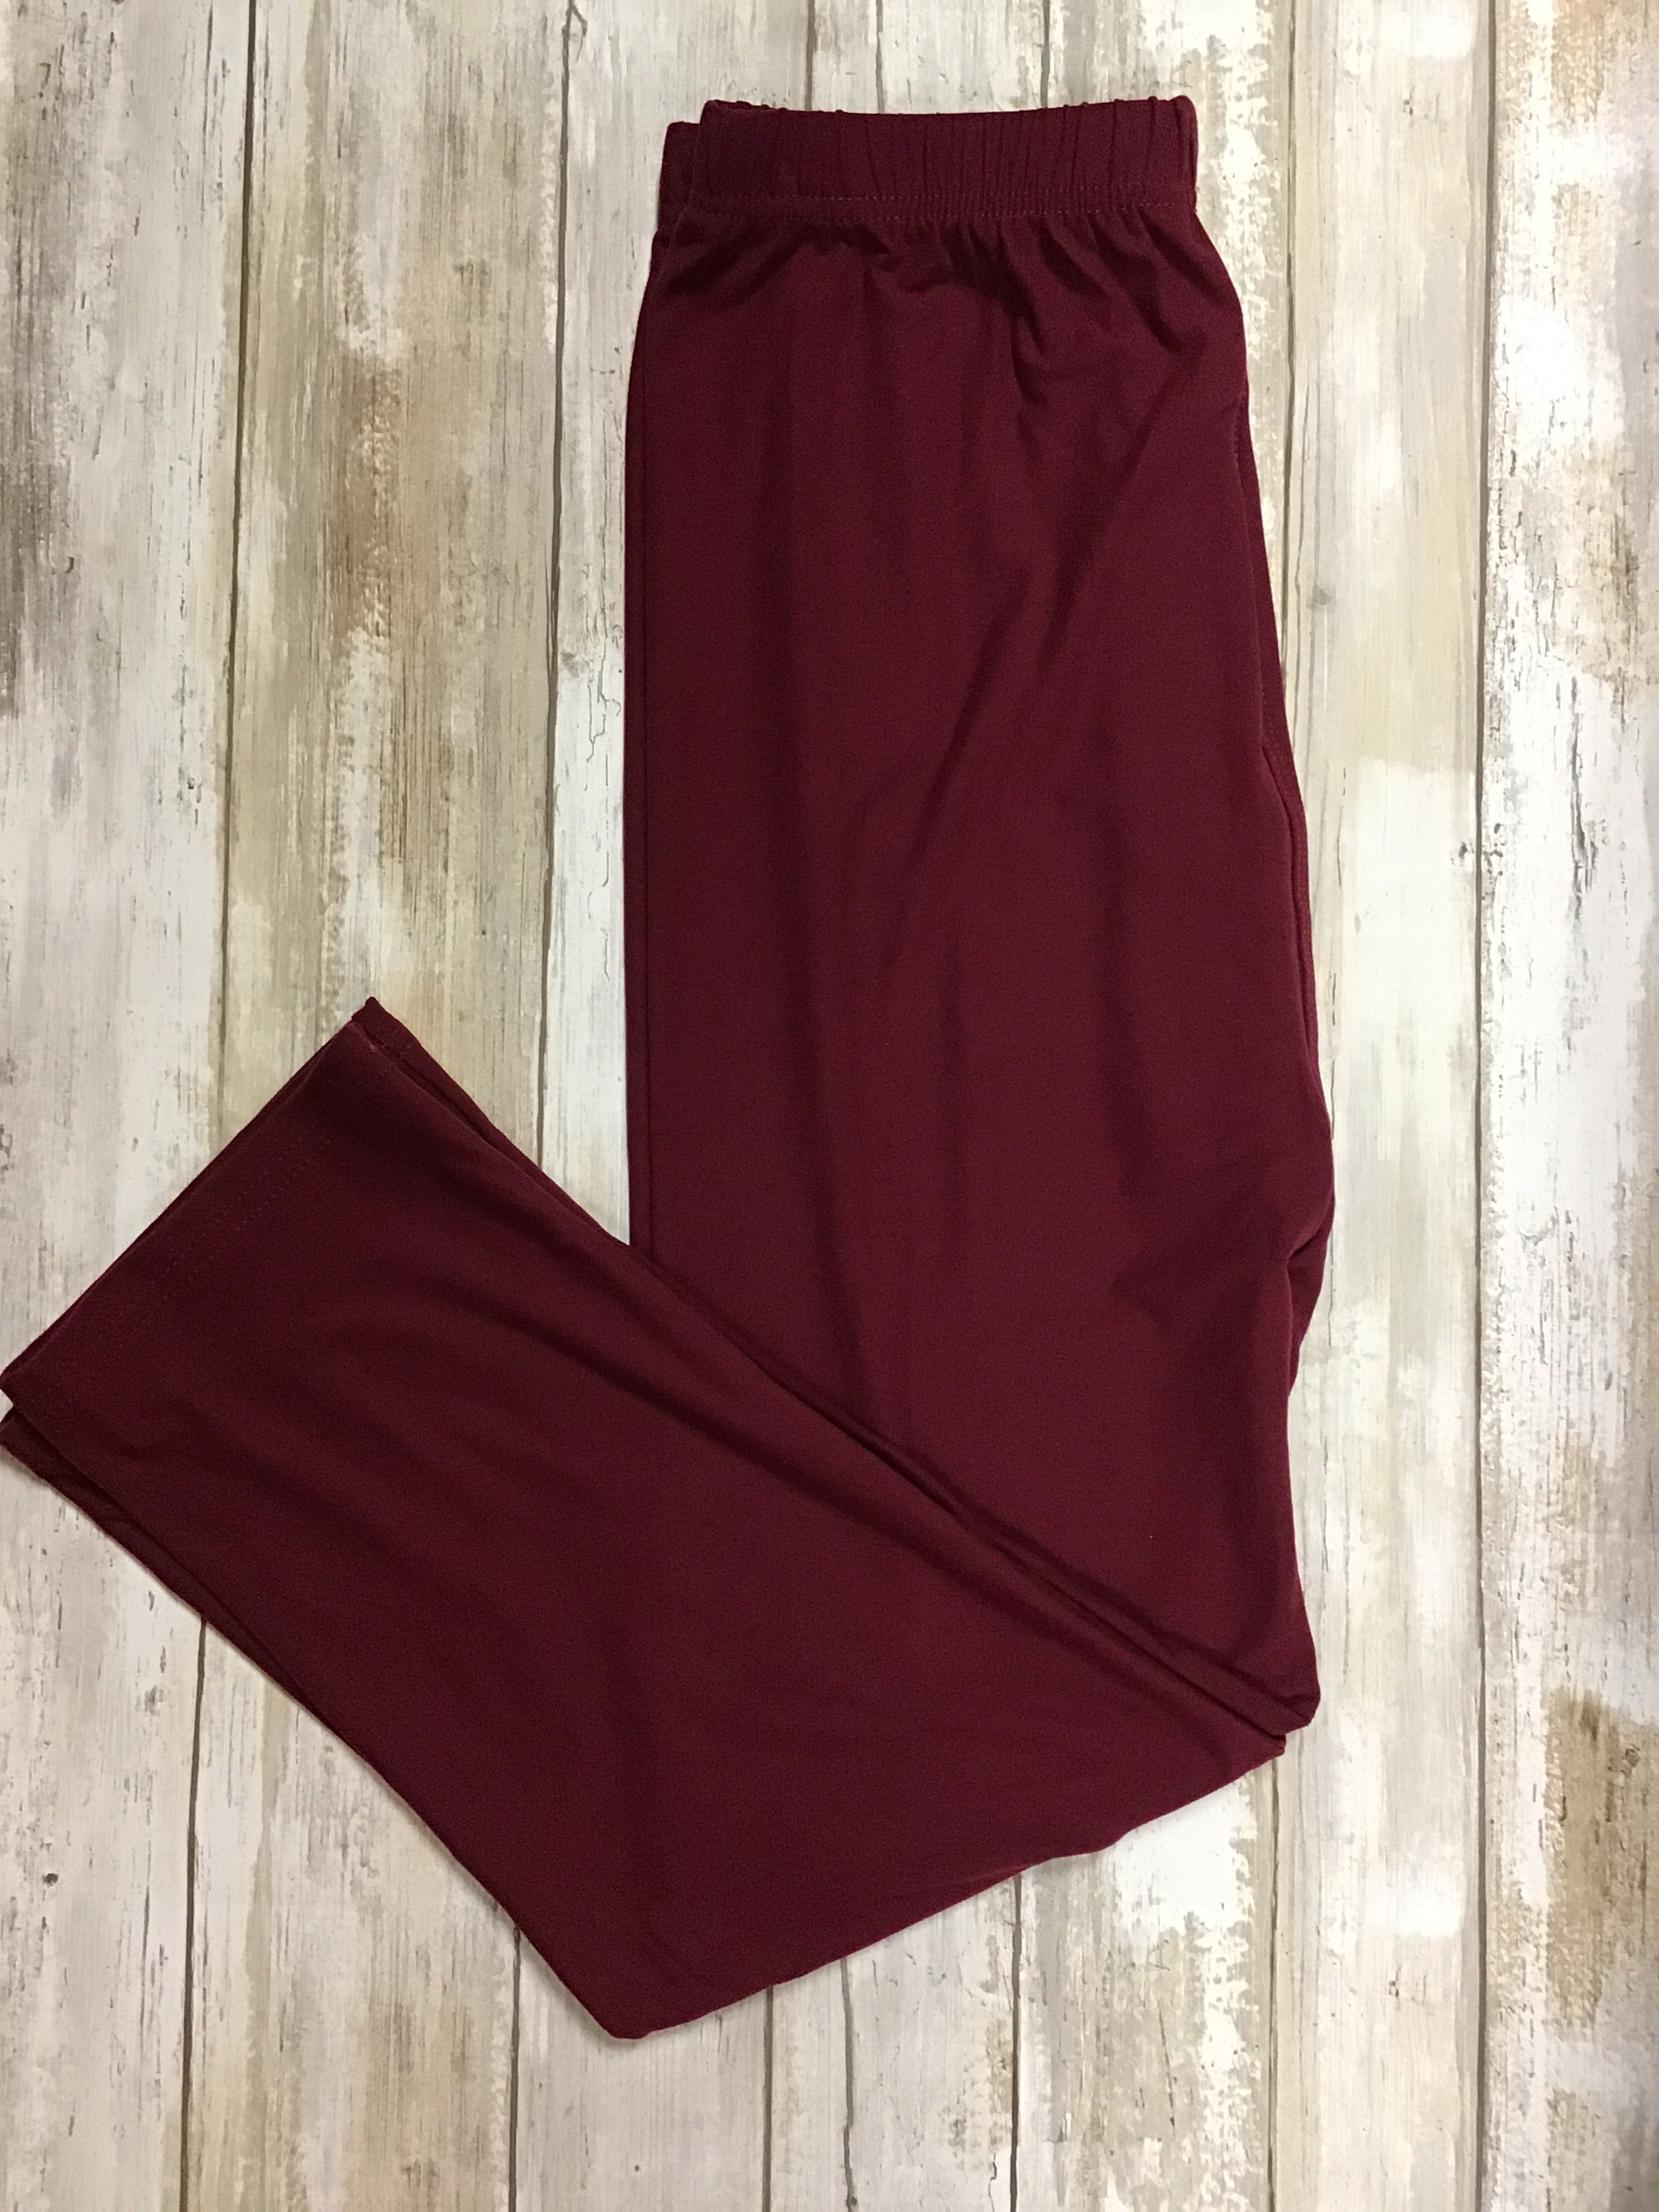 Capri burgundy leggings